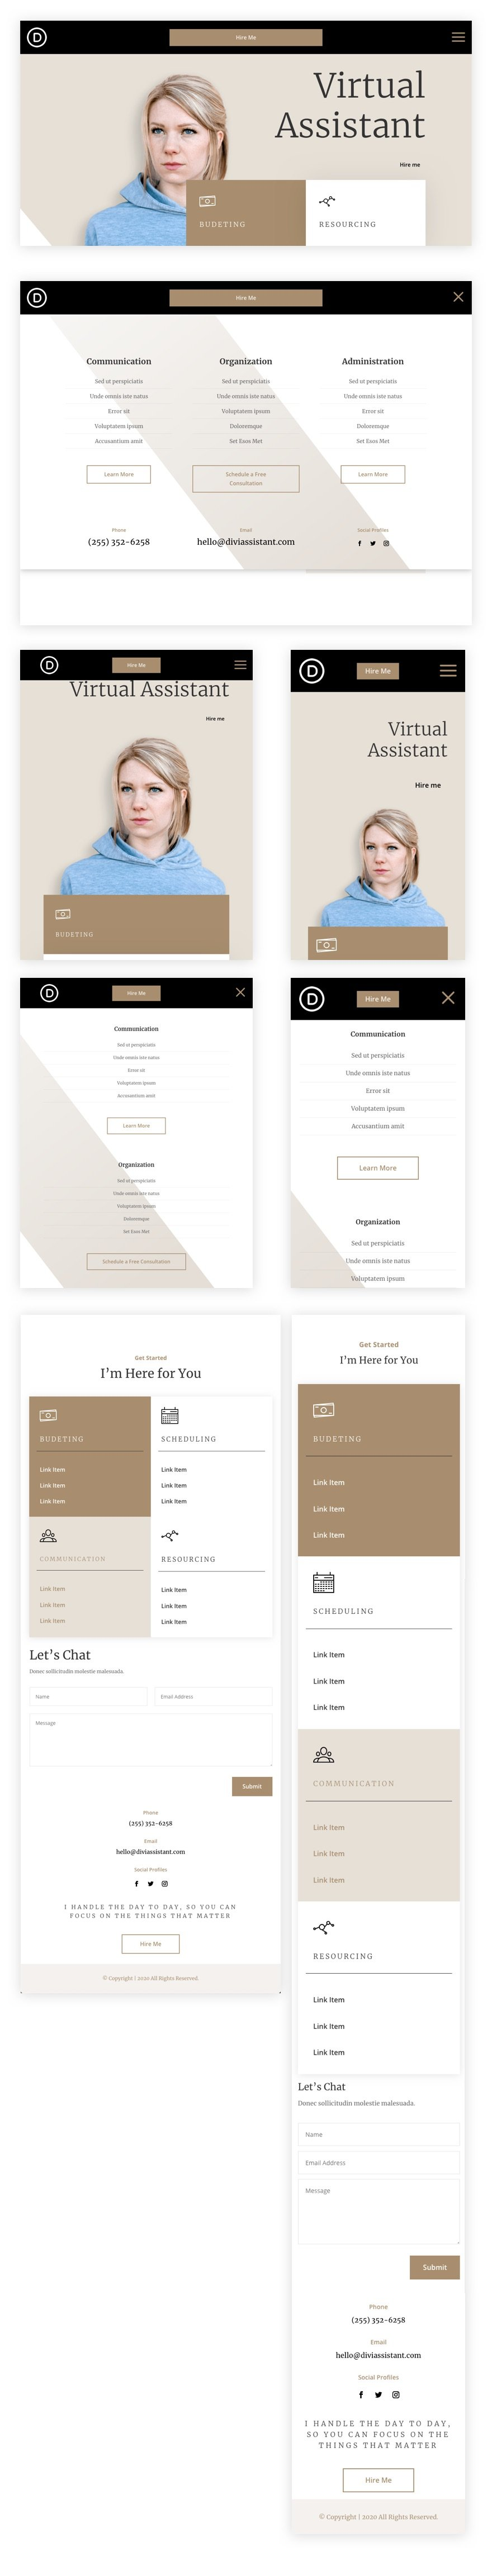 divi virtual assistant header and footer template